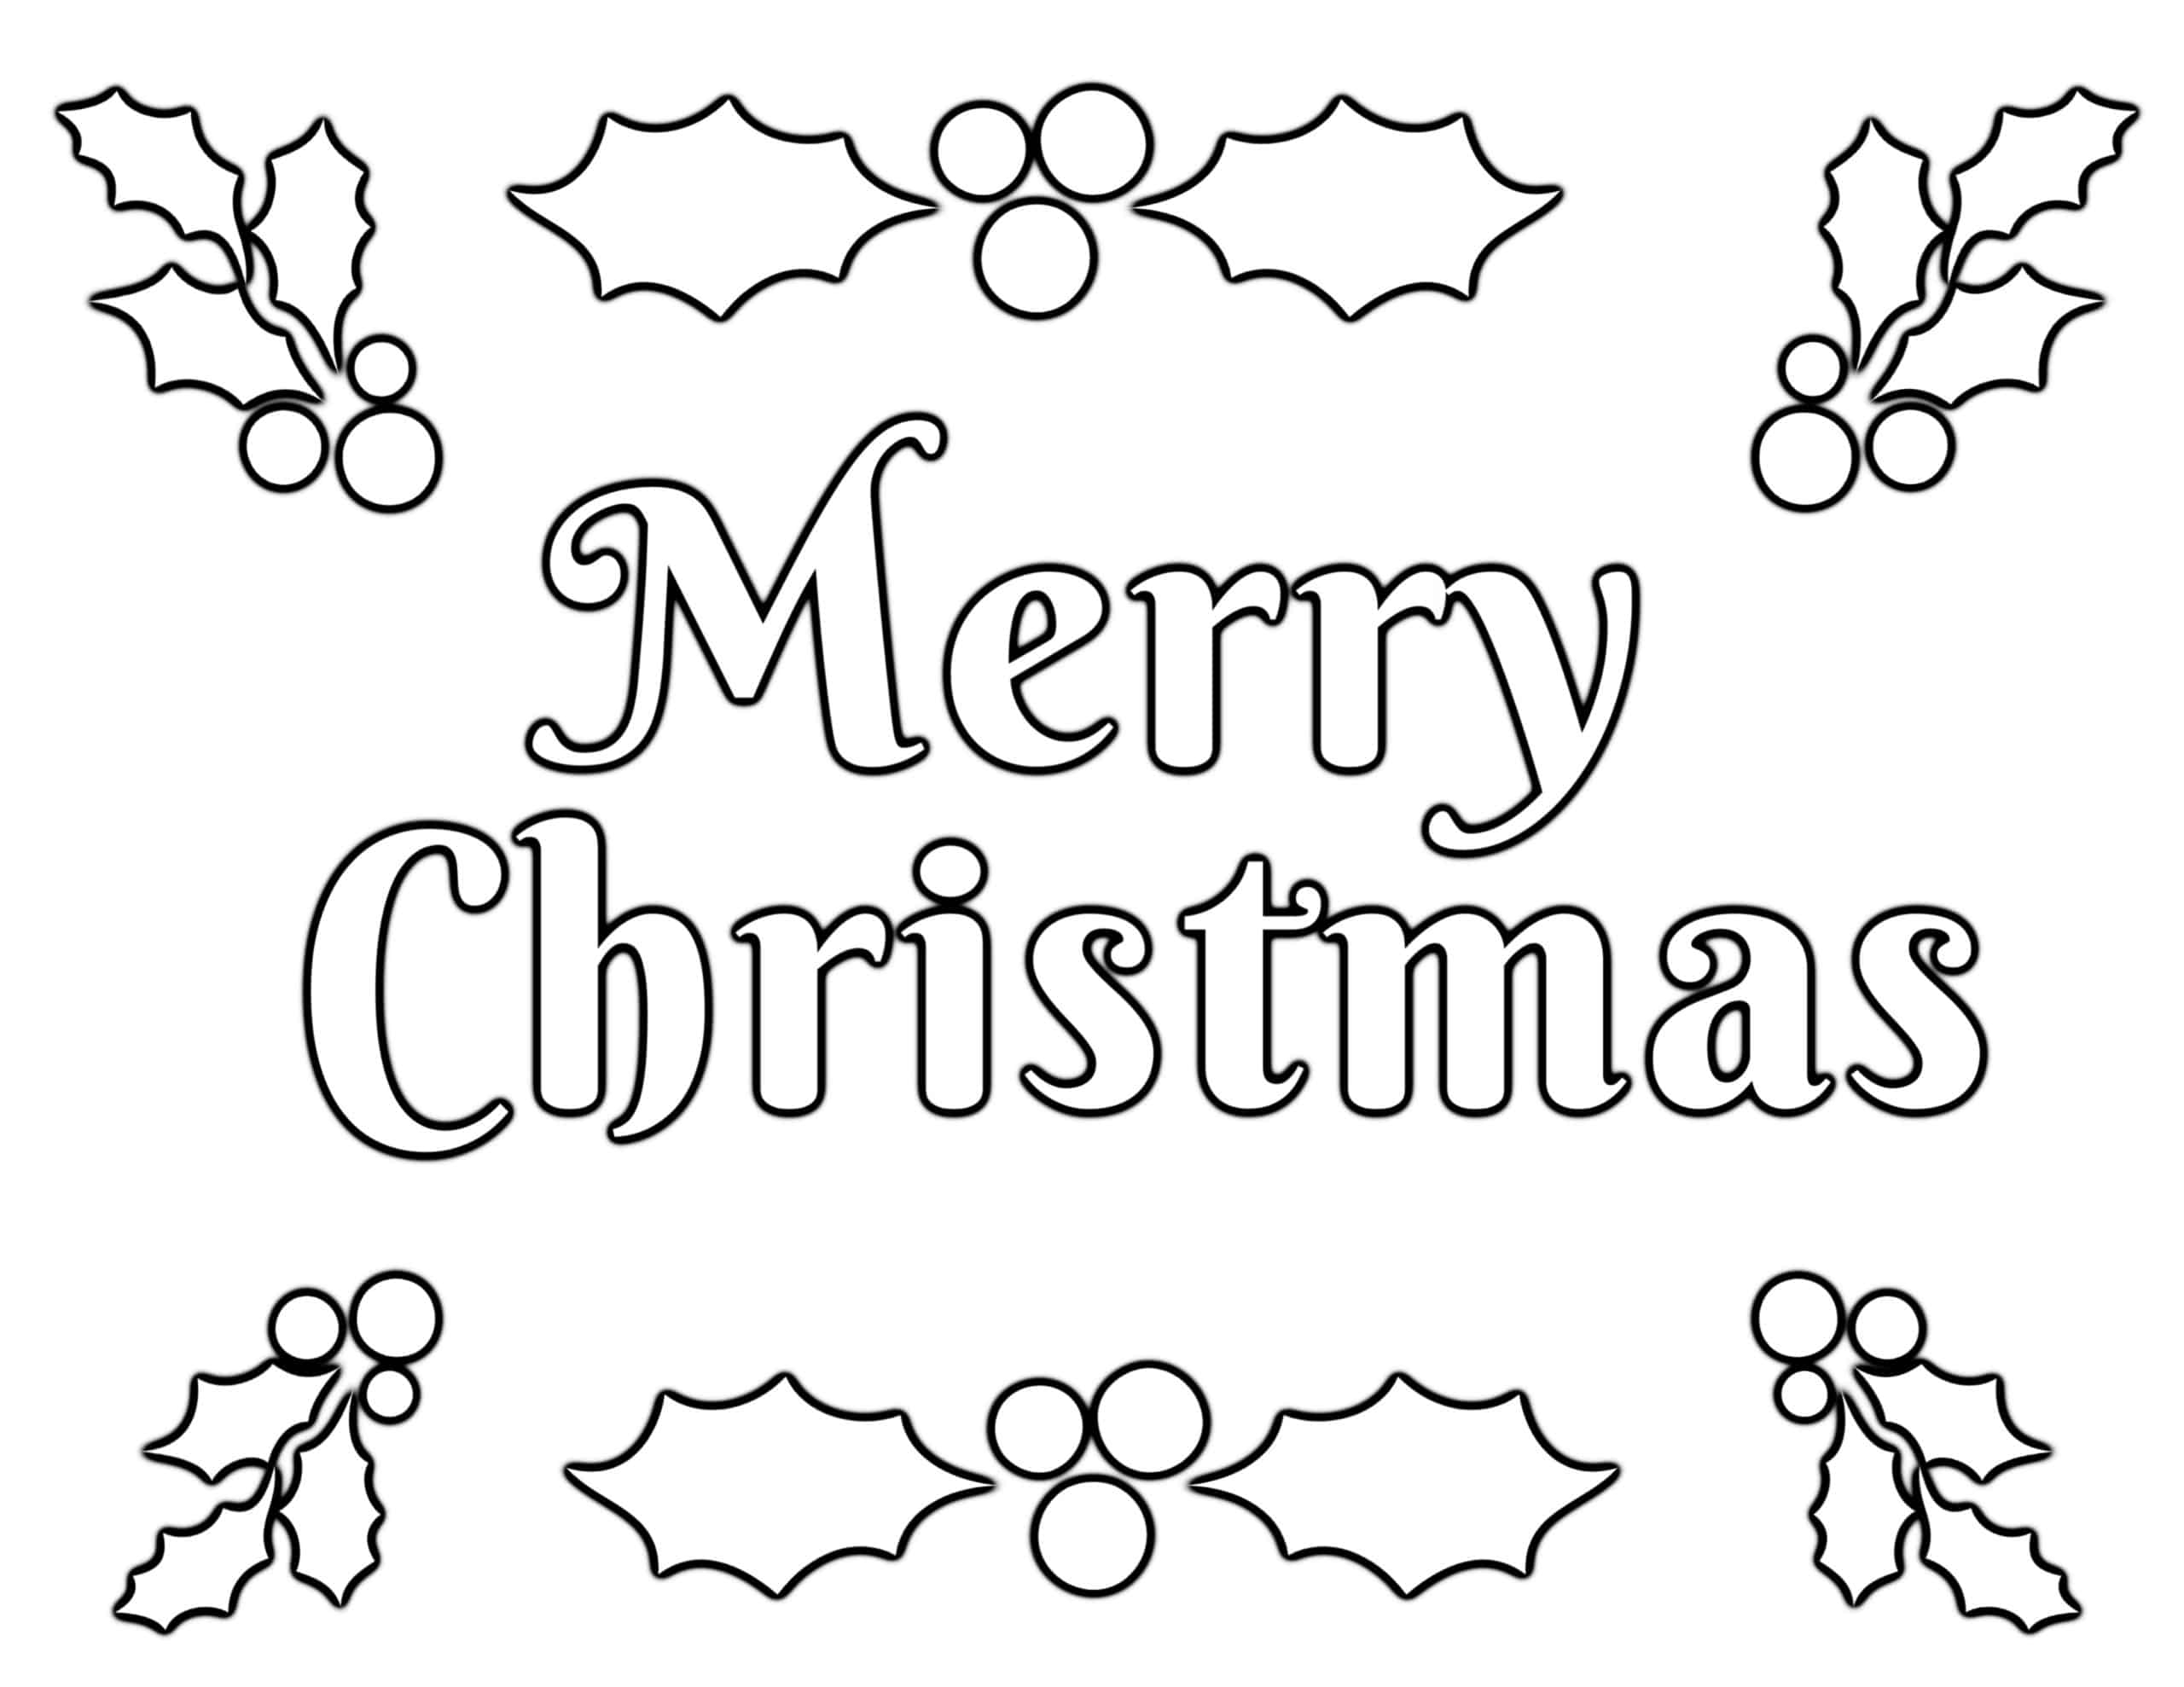 Free Religious Christmas Coloring Sheets For Kids Printable